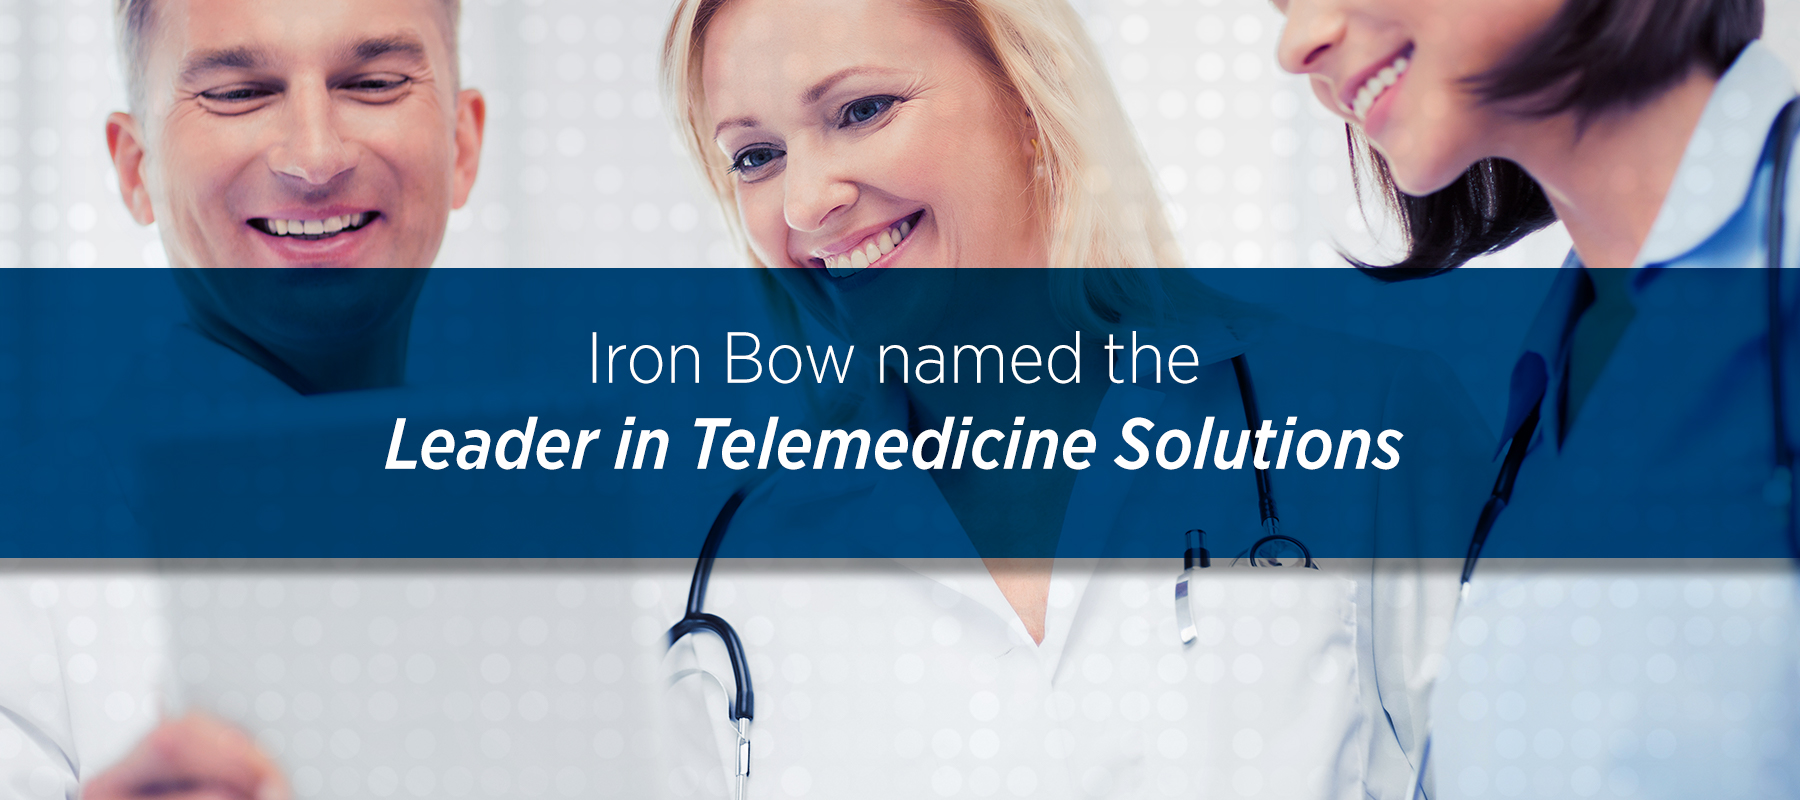 Iron Bow named the Leader in Telemedicine Solutions